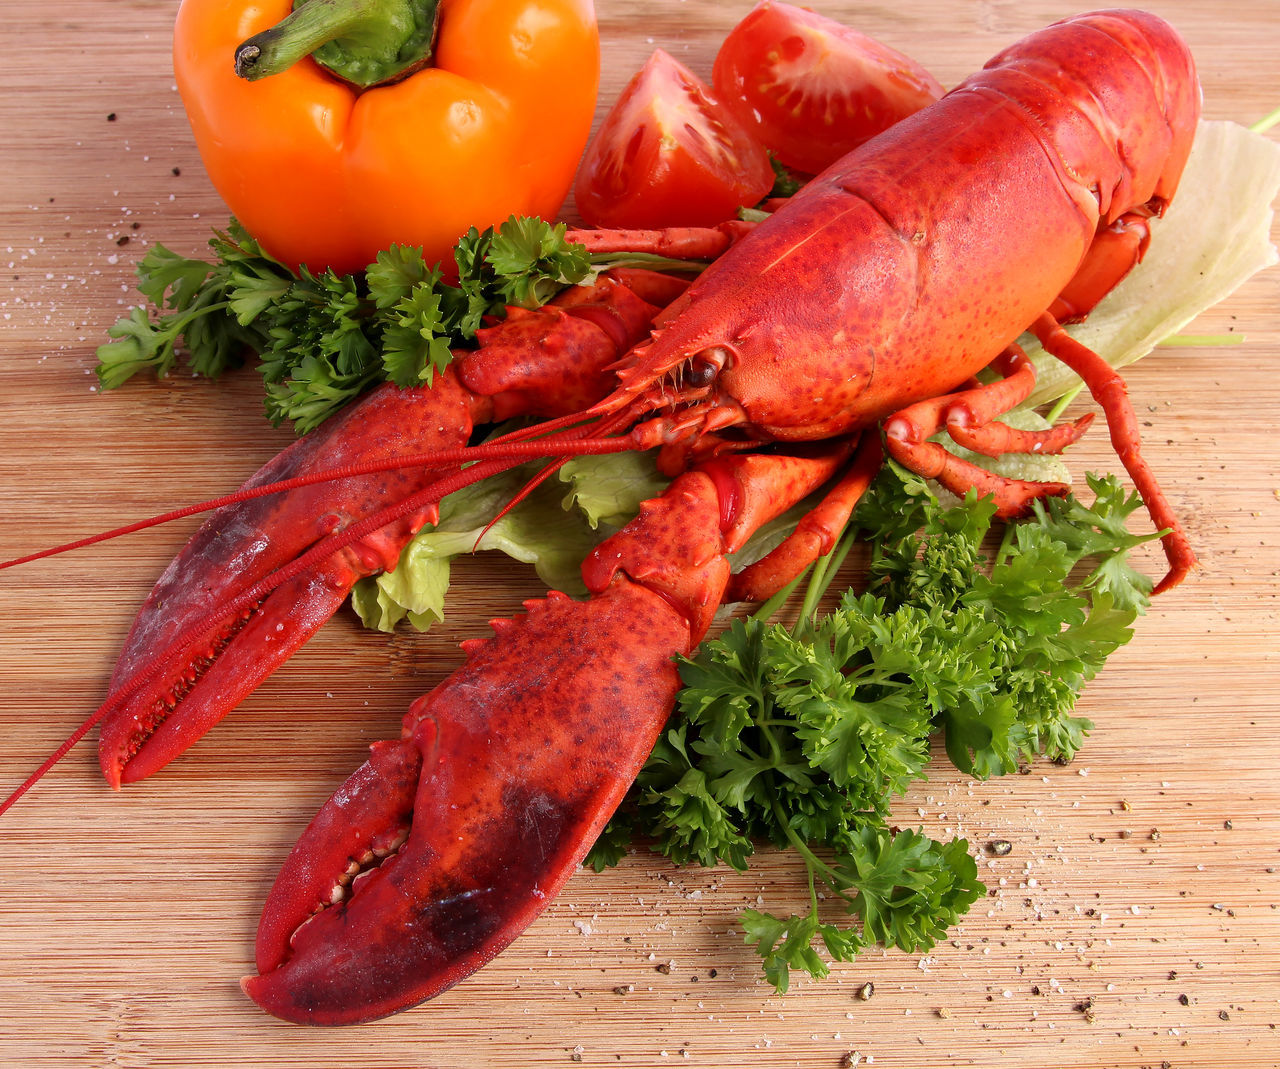 Beautiful stock photos of lobster, food and drink, food, freshness, wood - material